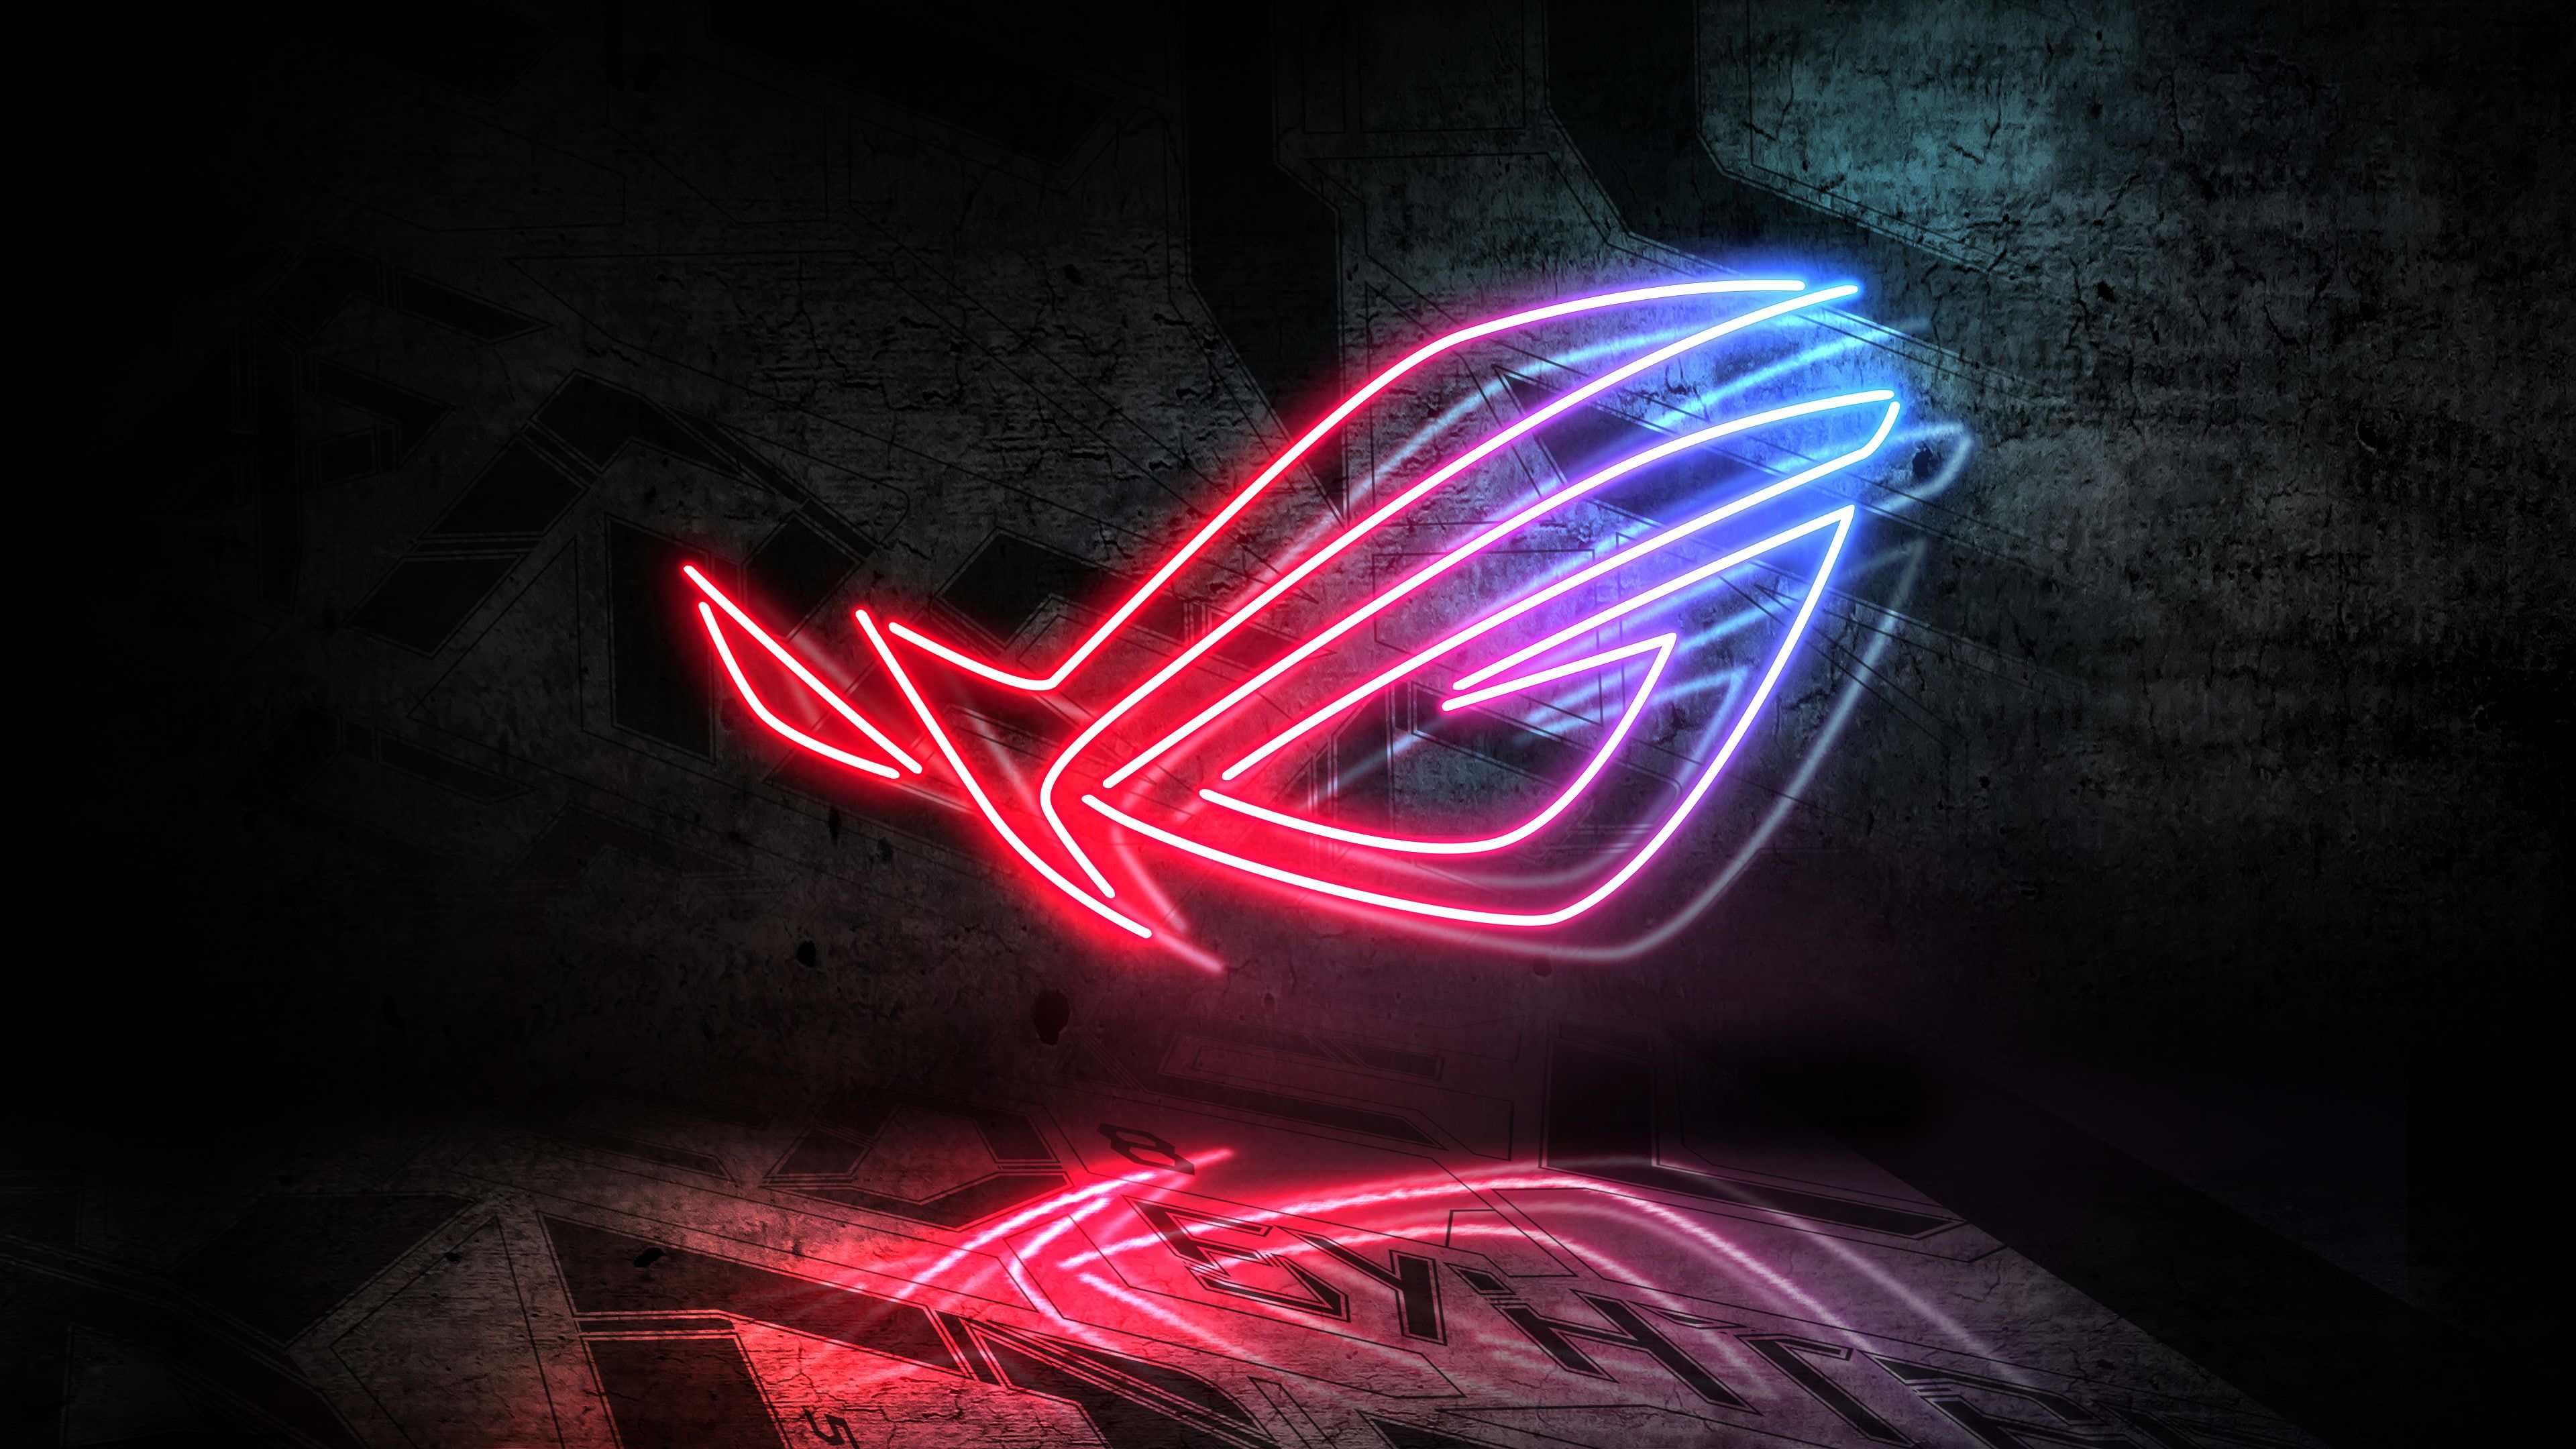 Asus Rog Neon Logo 4k Logo Asus Neon Rog 4k Wallpaper Hdwallpaper Desktop In 2020 Neon Logo Gaming Wallpapers Hd Iphone Wallpaper Hipster